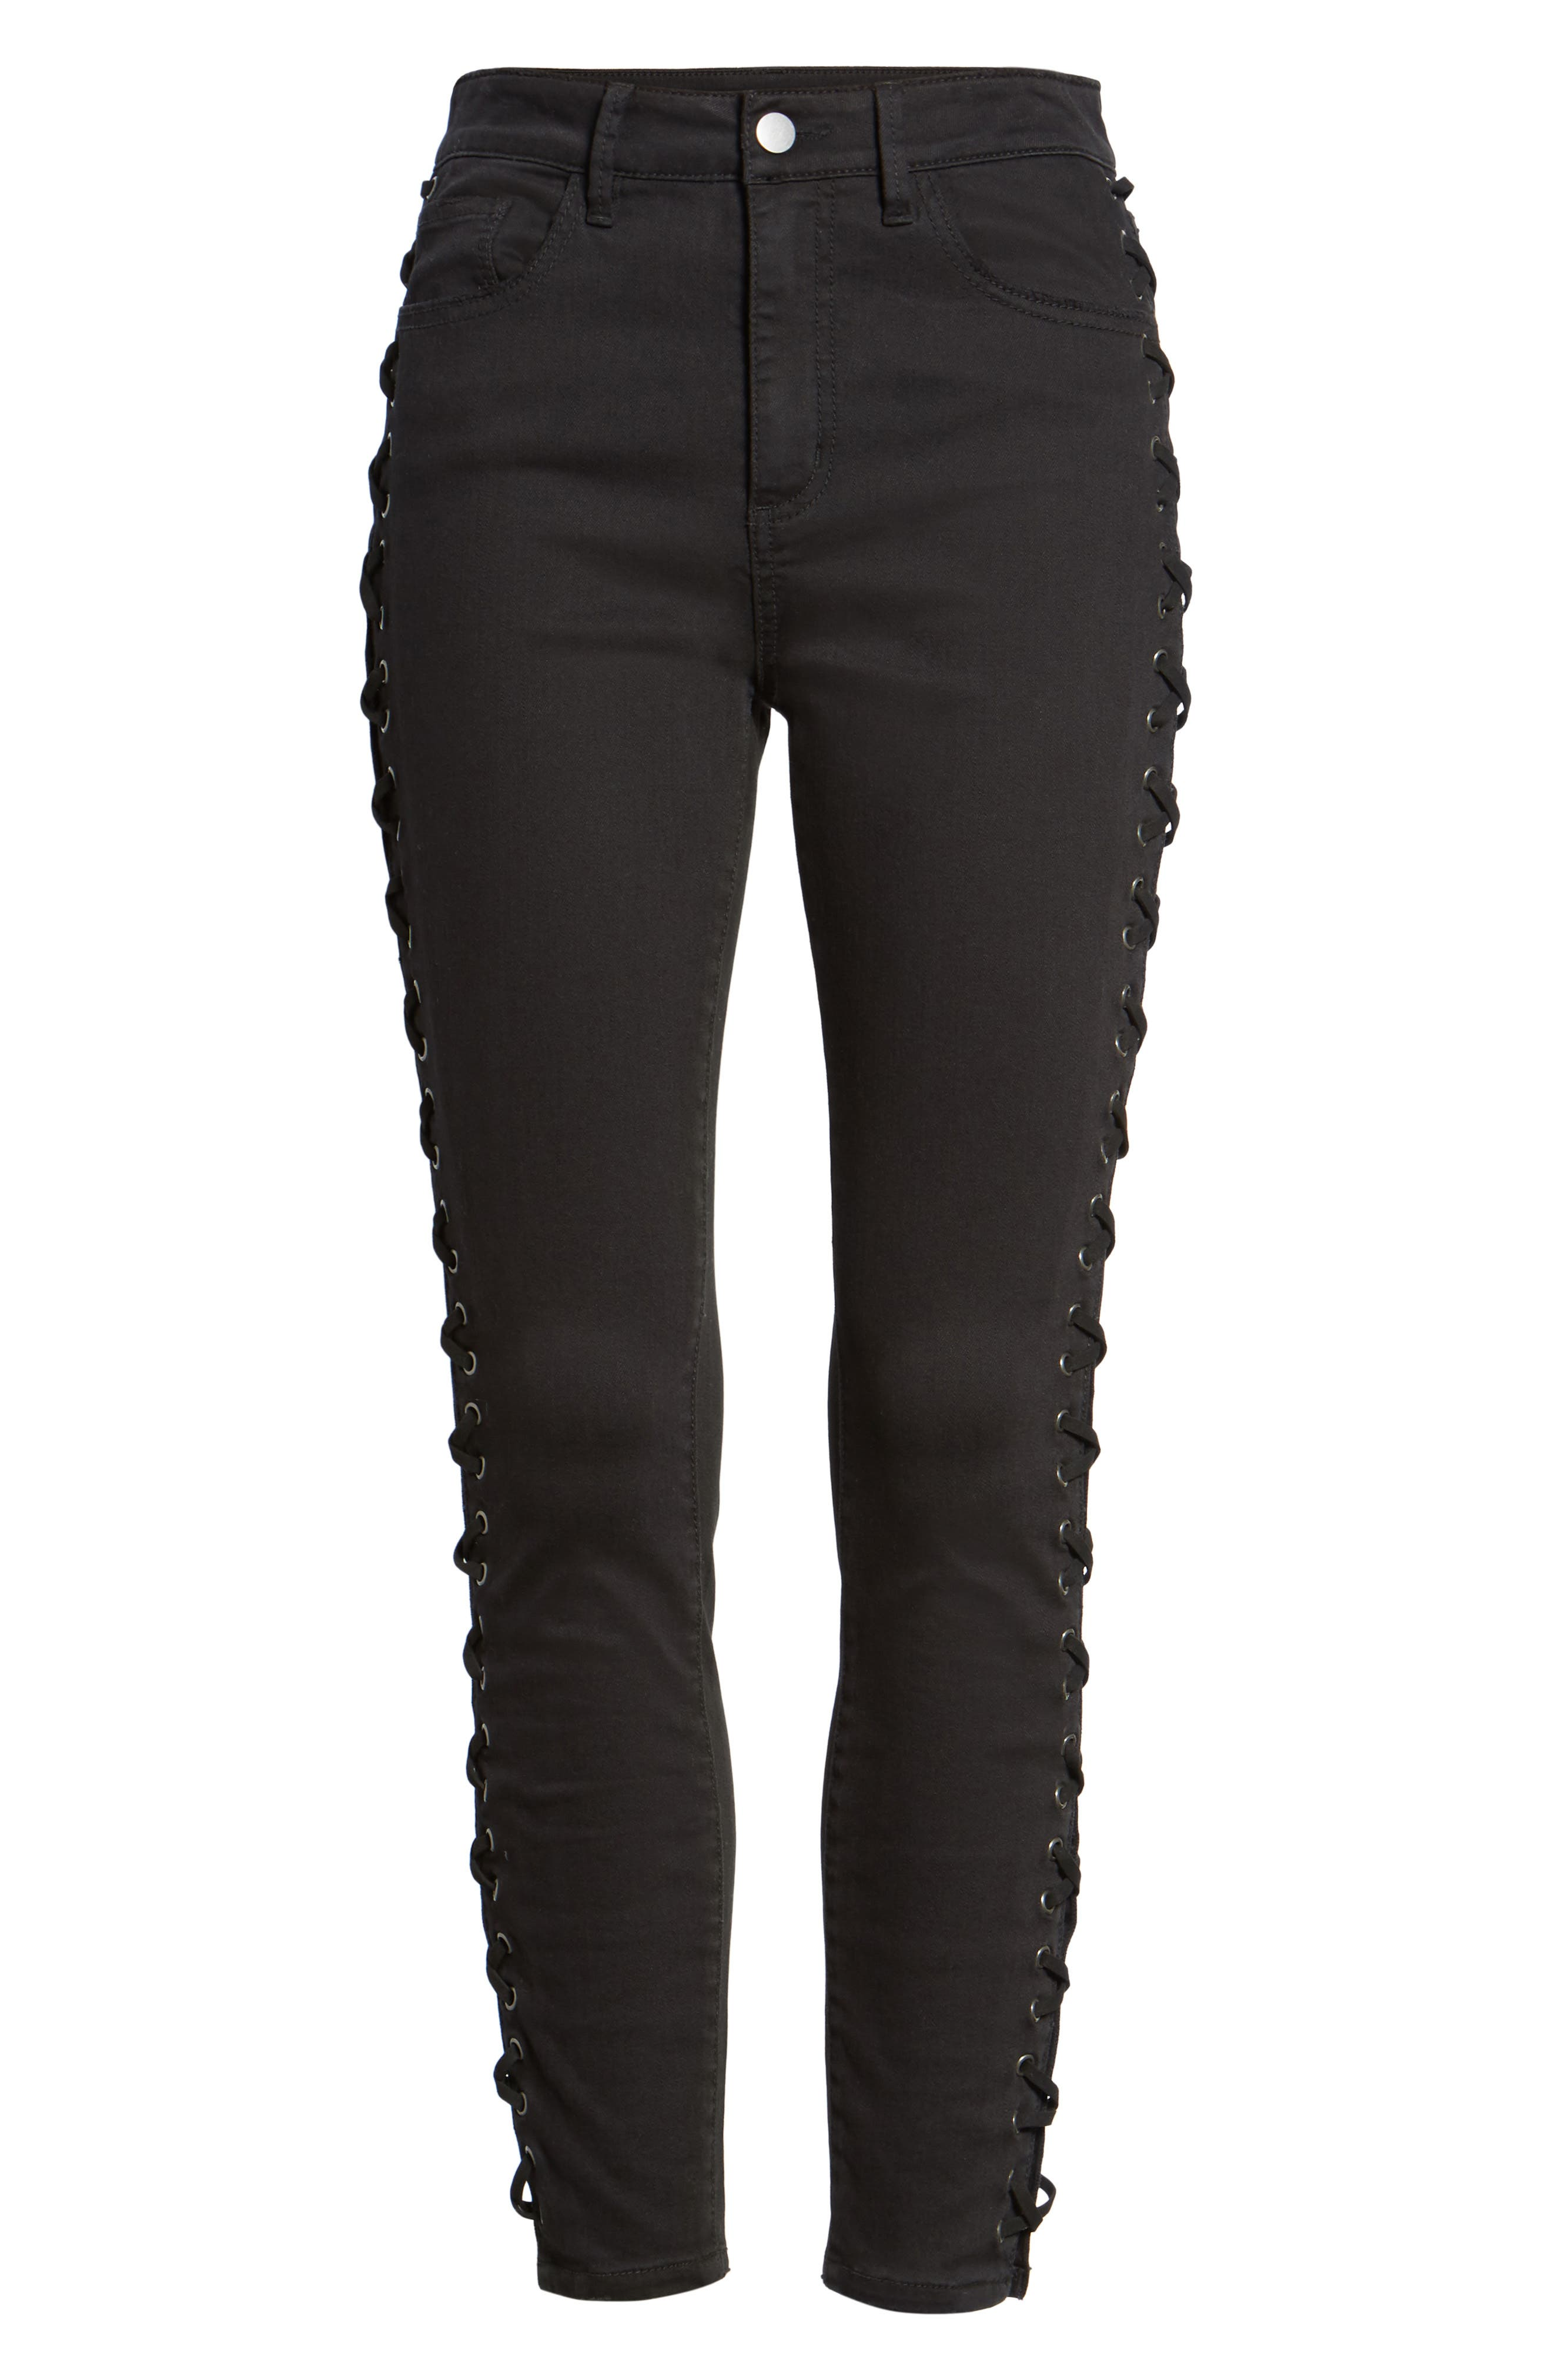 Lace-Up Skinny Jeans,                             Alternate thumbnail 6, color,                             Black Rinse Wash